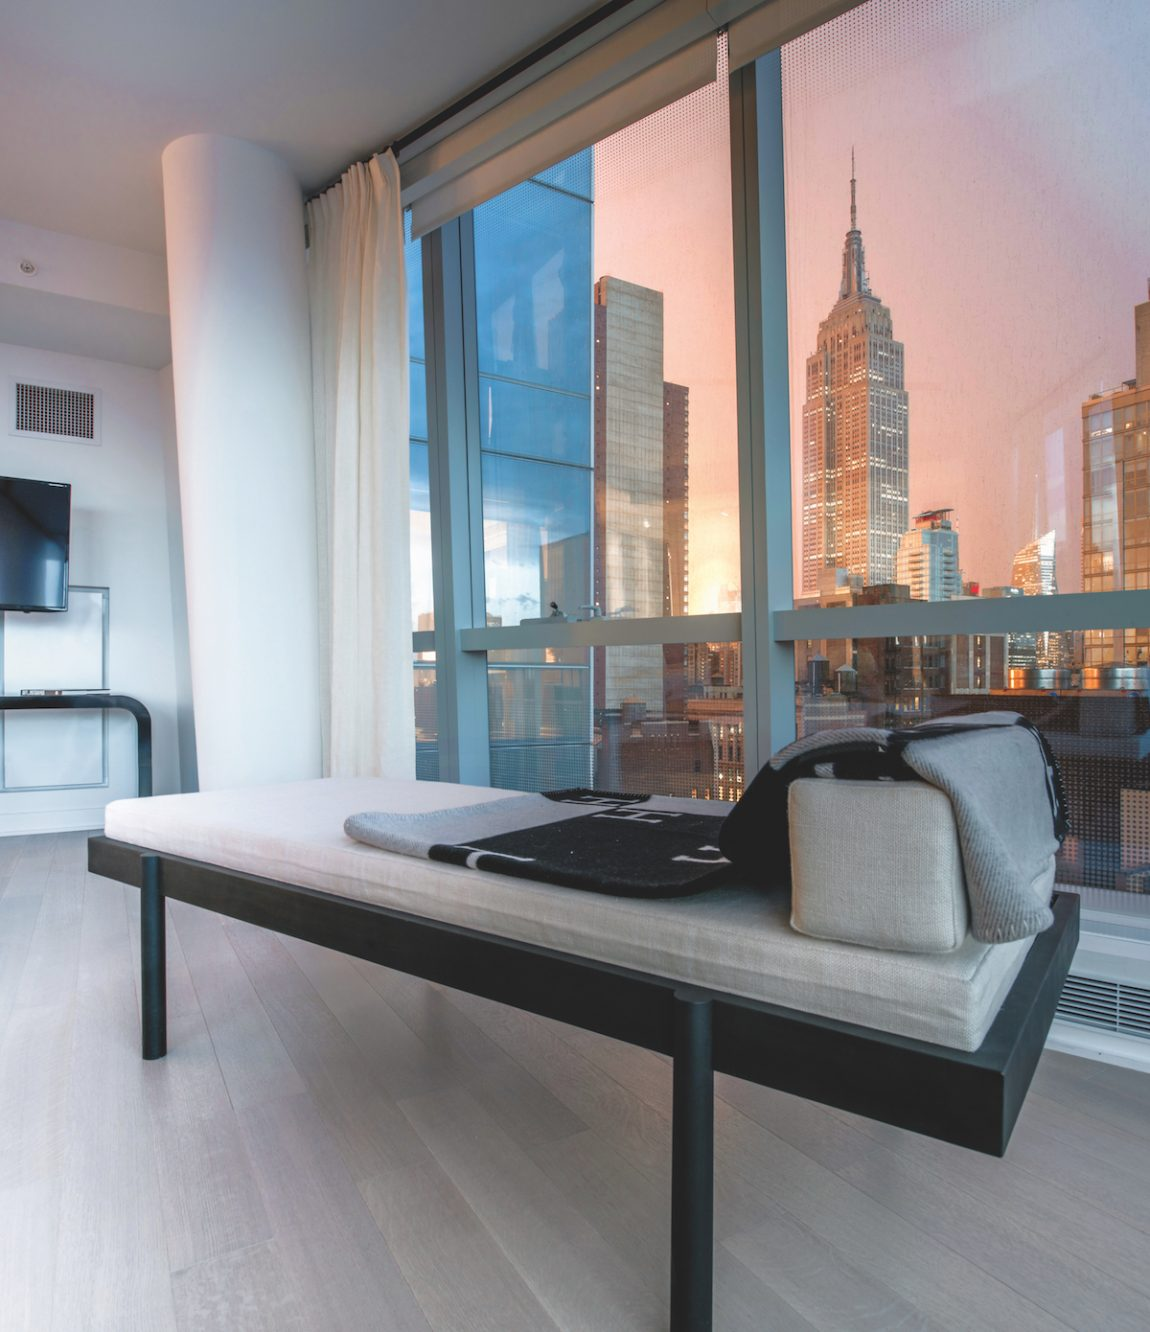 A modern couch next to a window with a view of the Empire Sate Building at sunset.